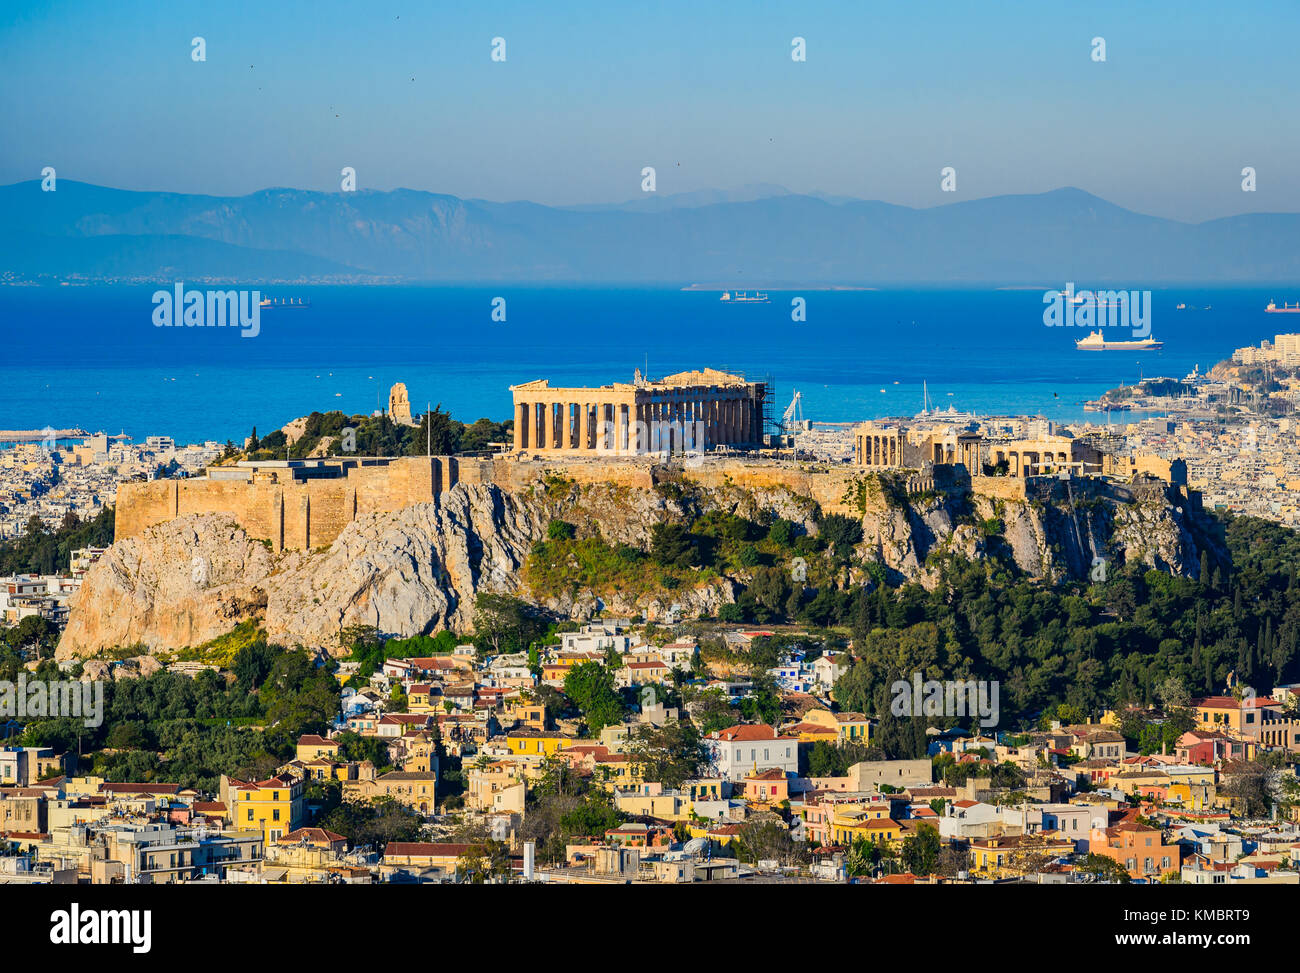 The Acropolis with the Parthenon in Athens, Greece - Stock Image